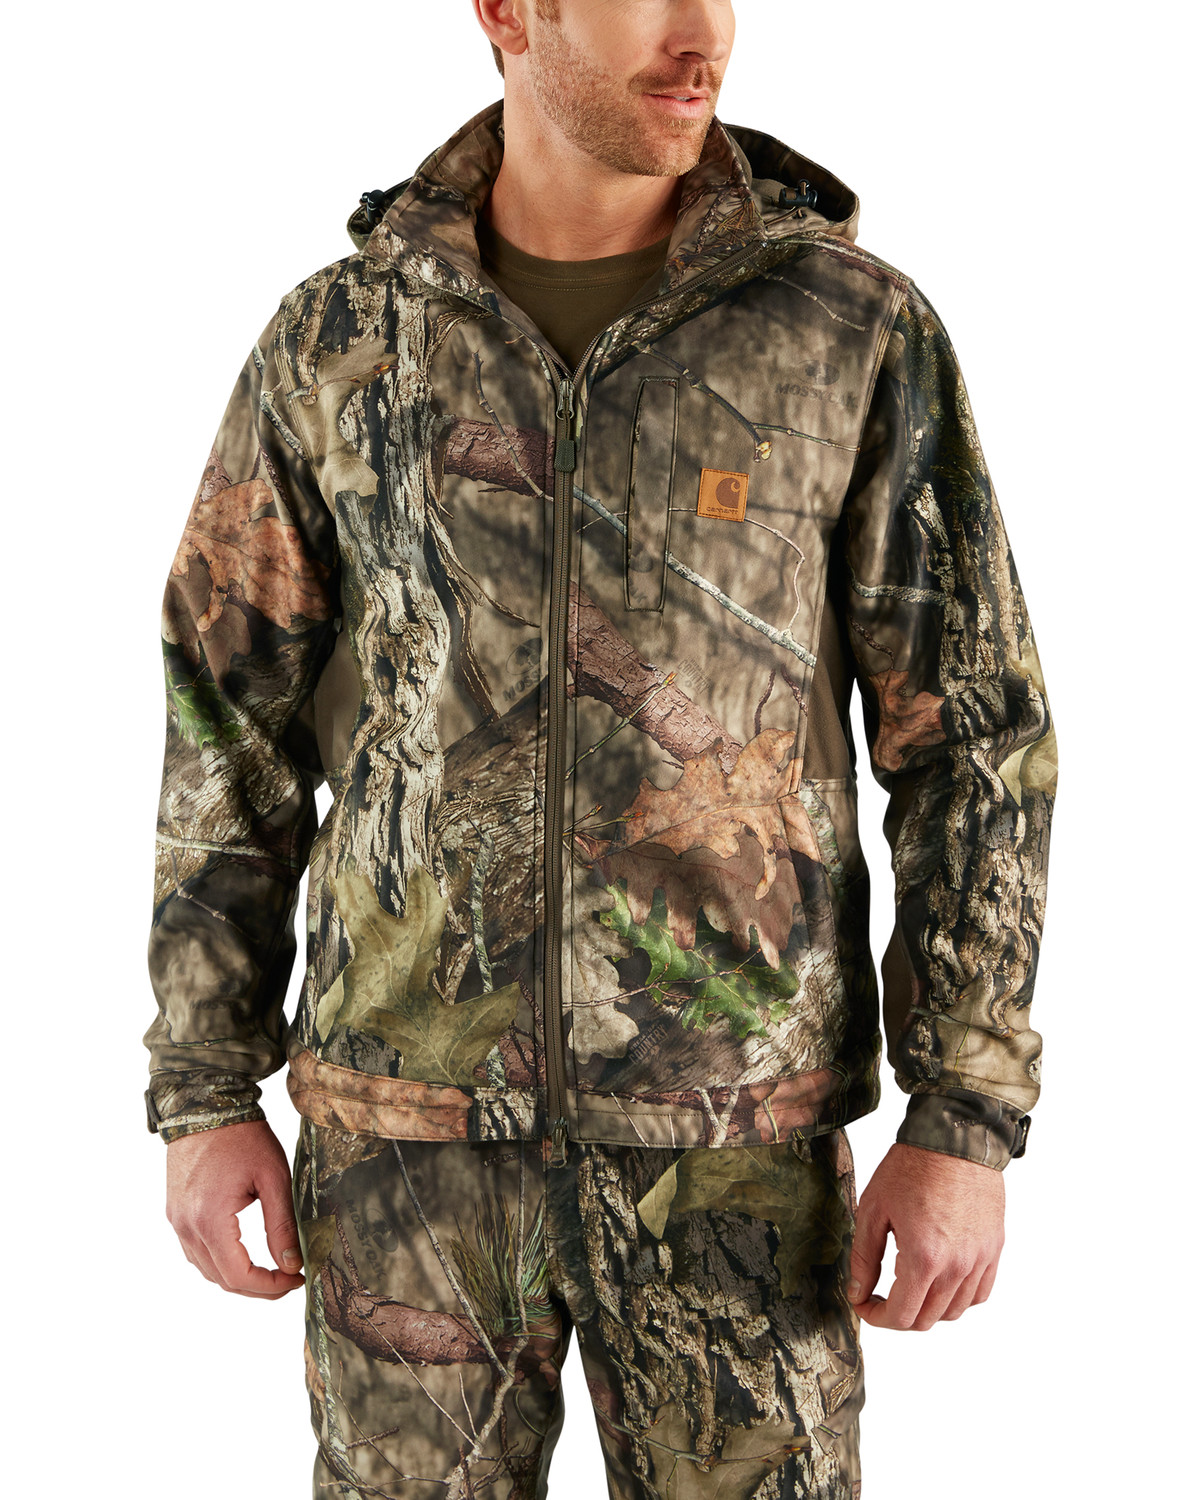 9de9e8ea Mens Big And Tall Camo Shirts - DREAMWORKS